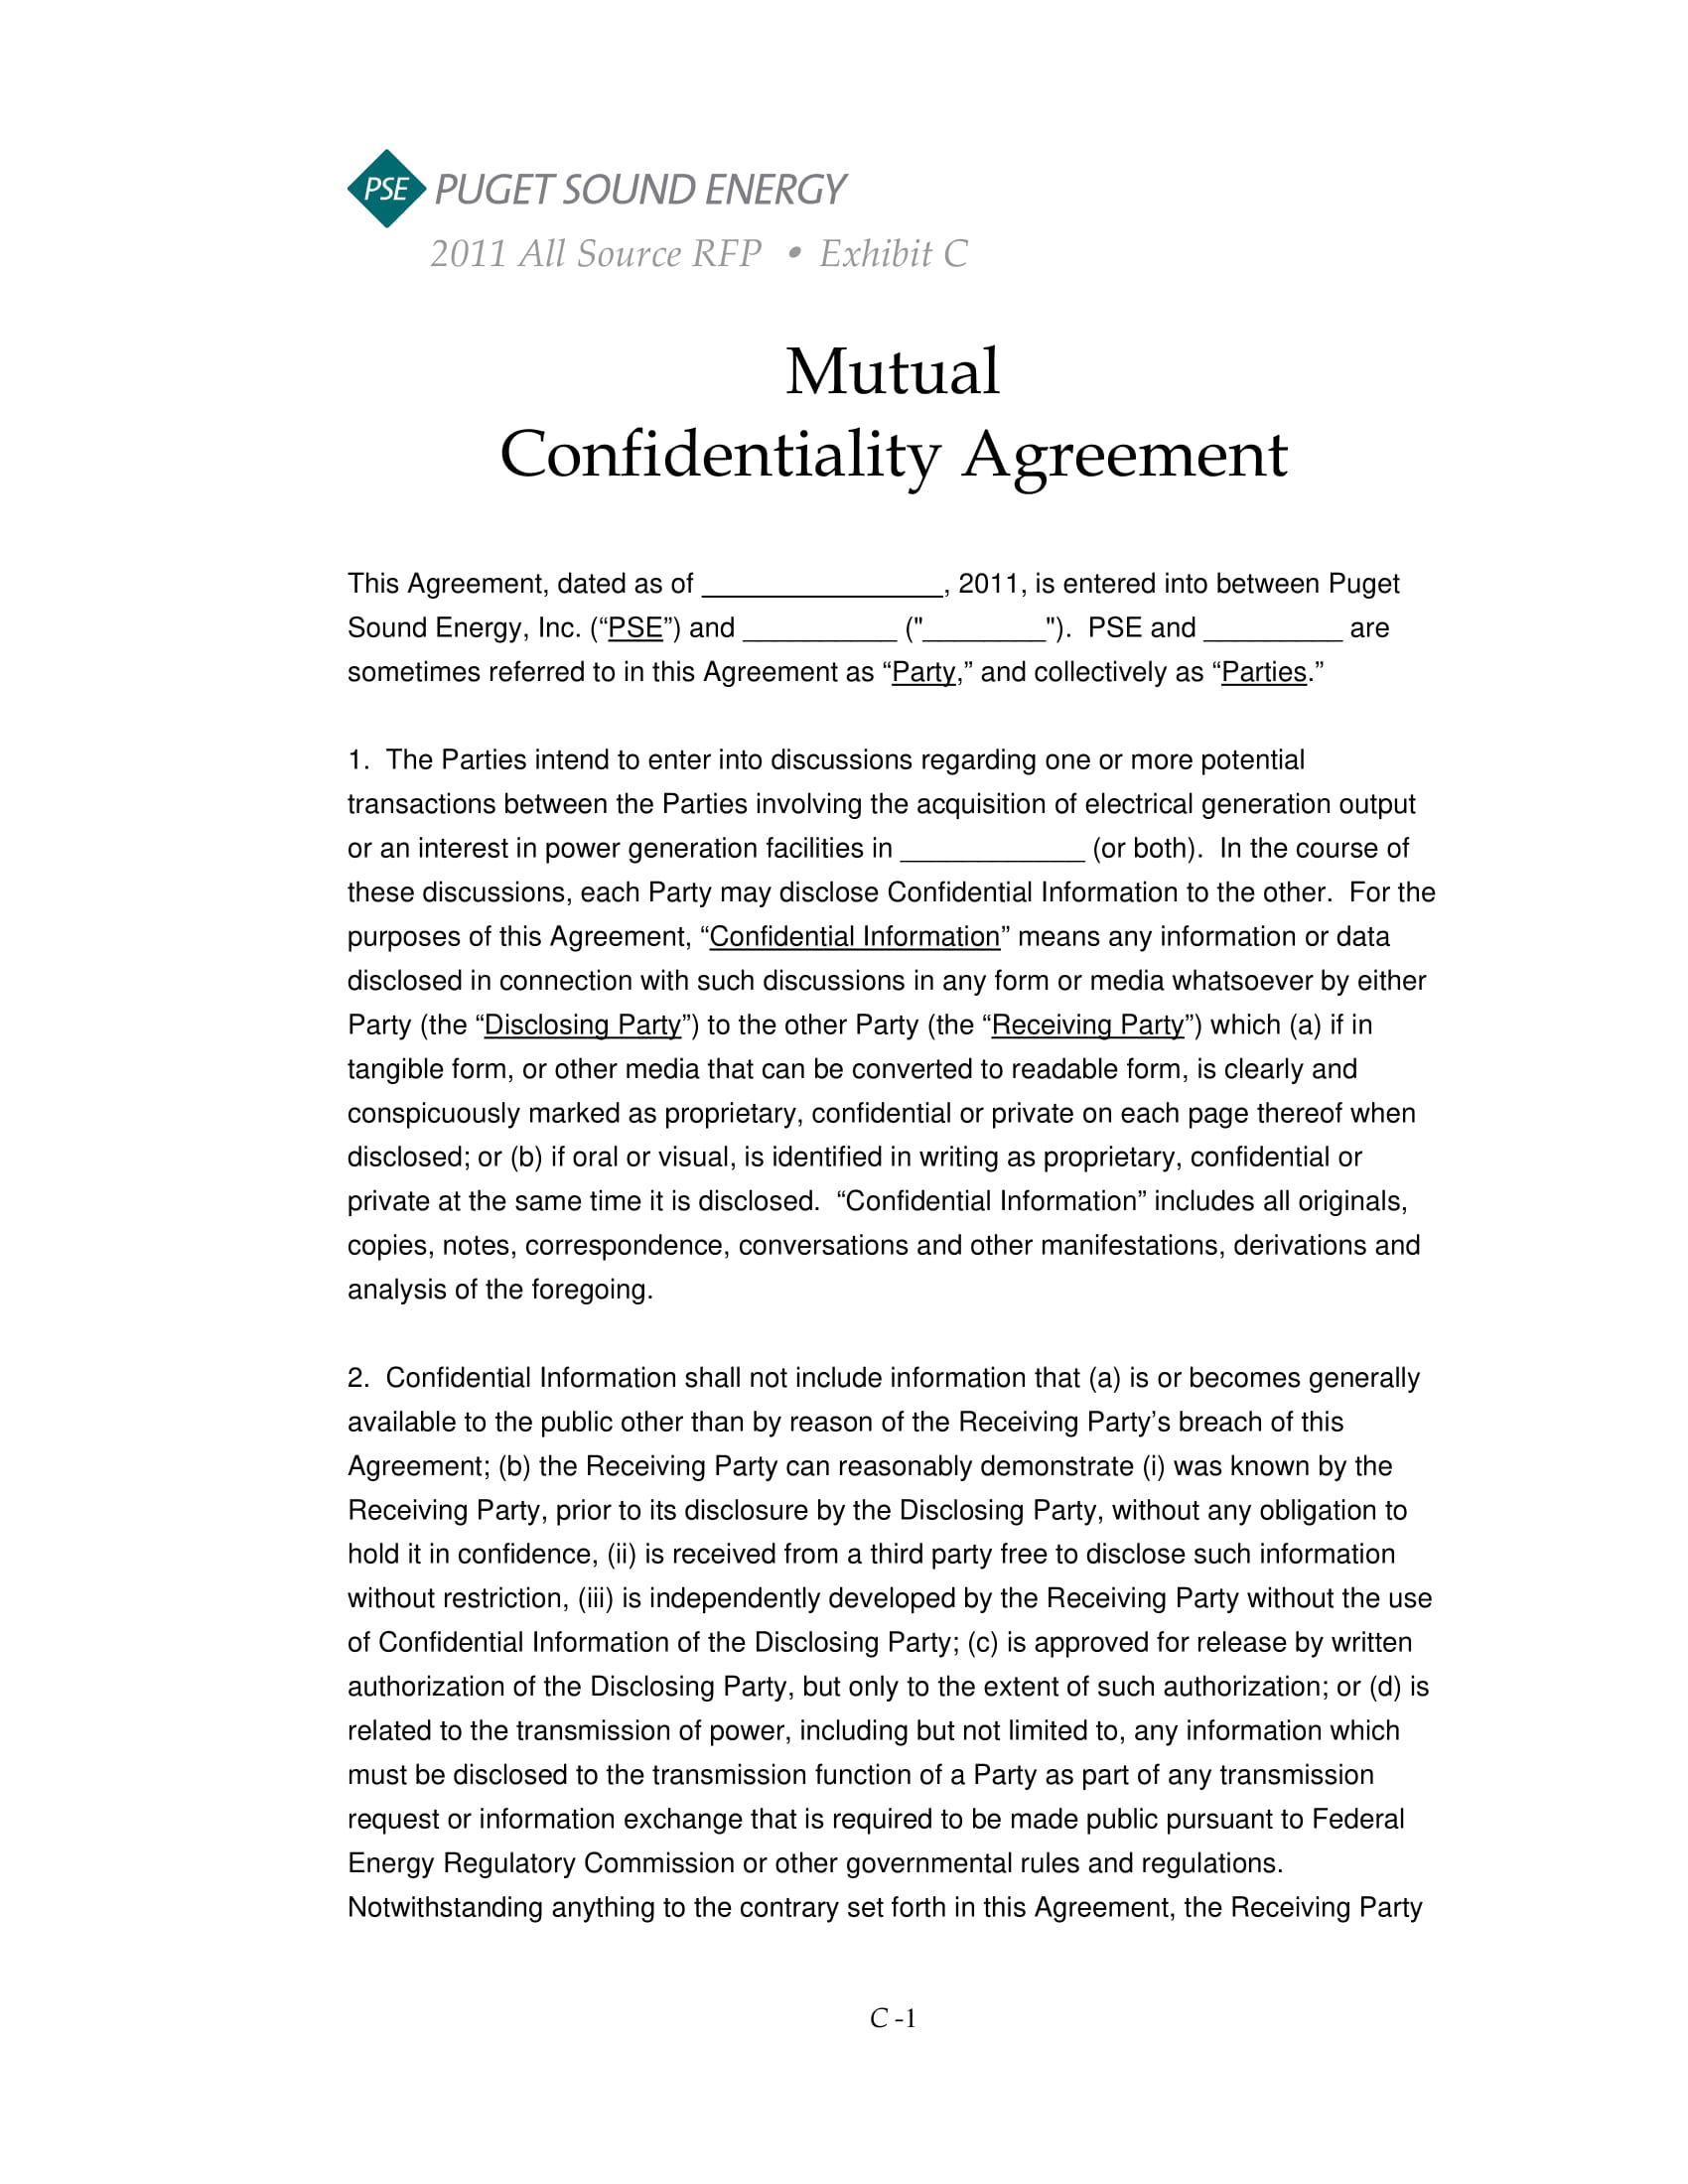 electric power mutual confidentiality agreement example